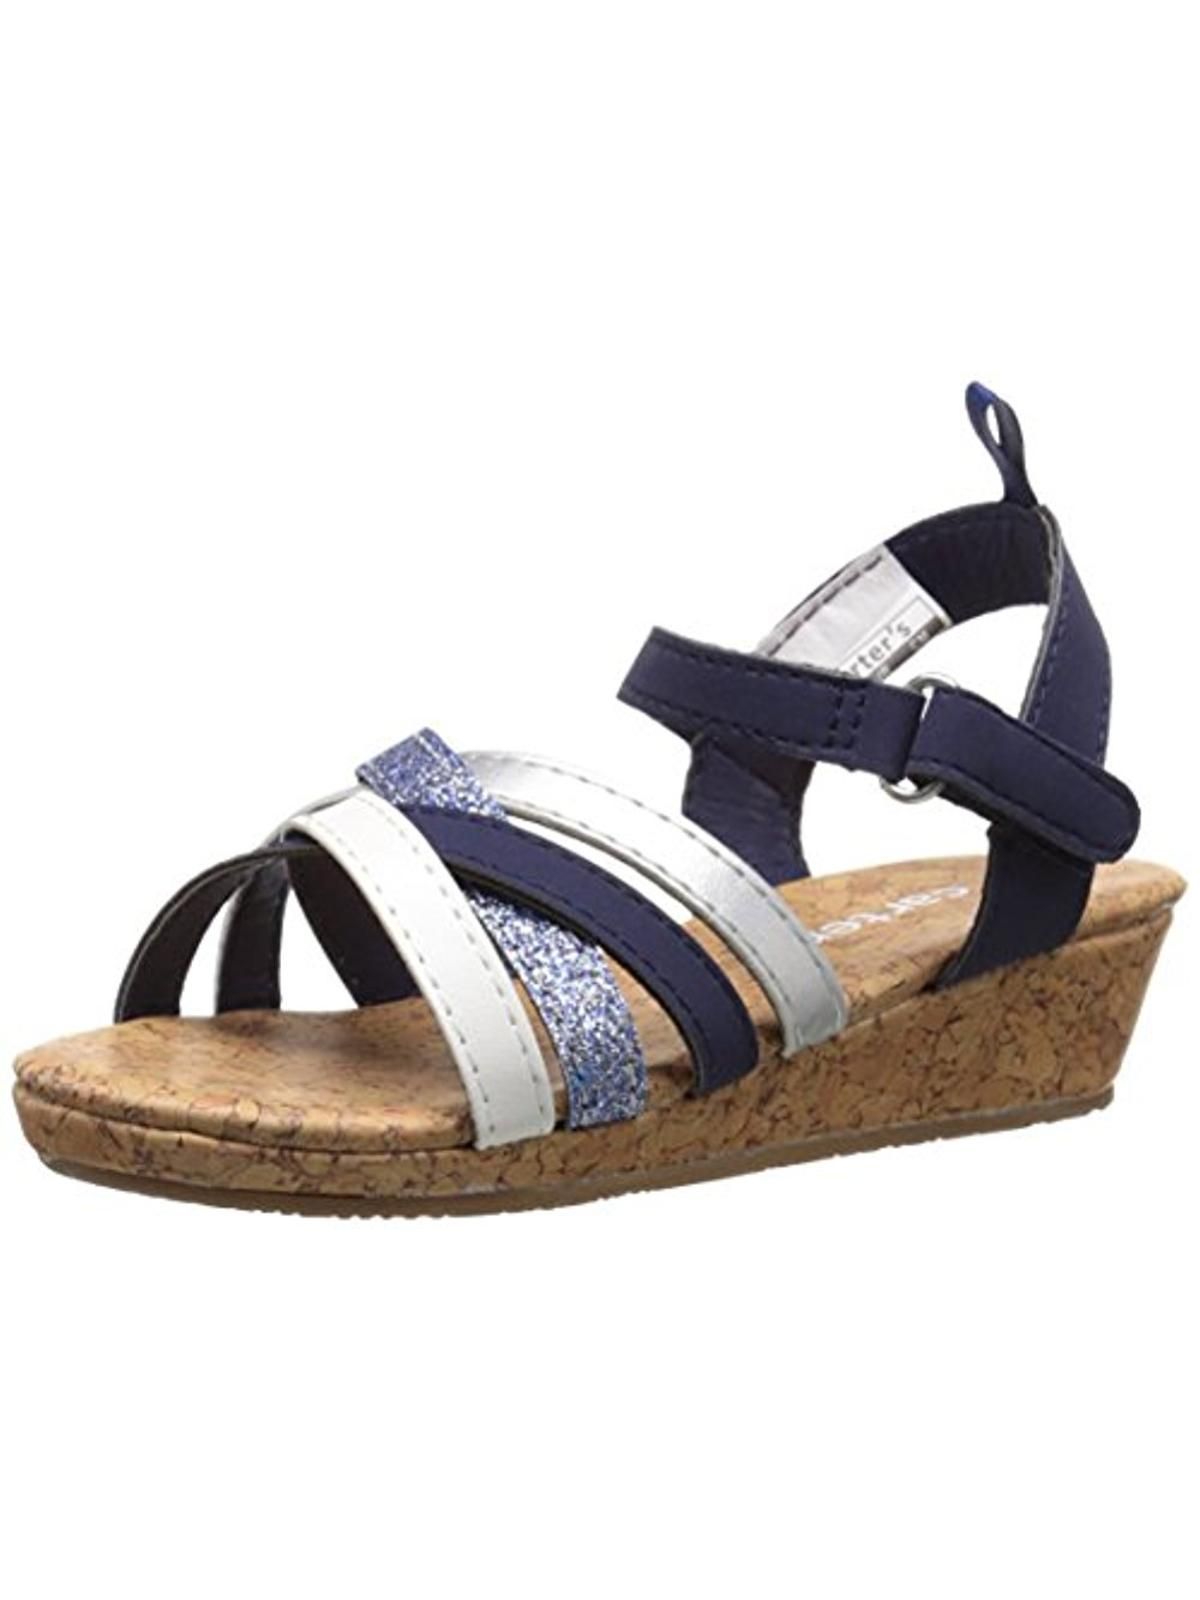 Carters Lana Glitter Faux Leather Sandals